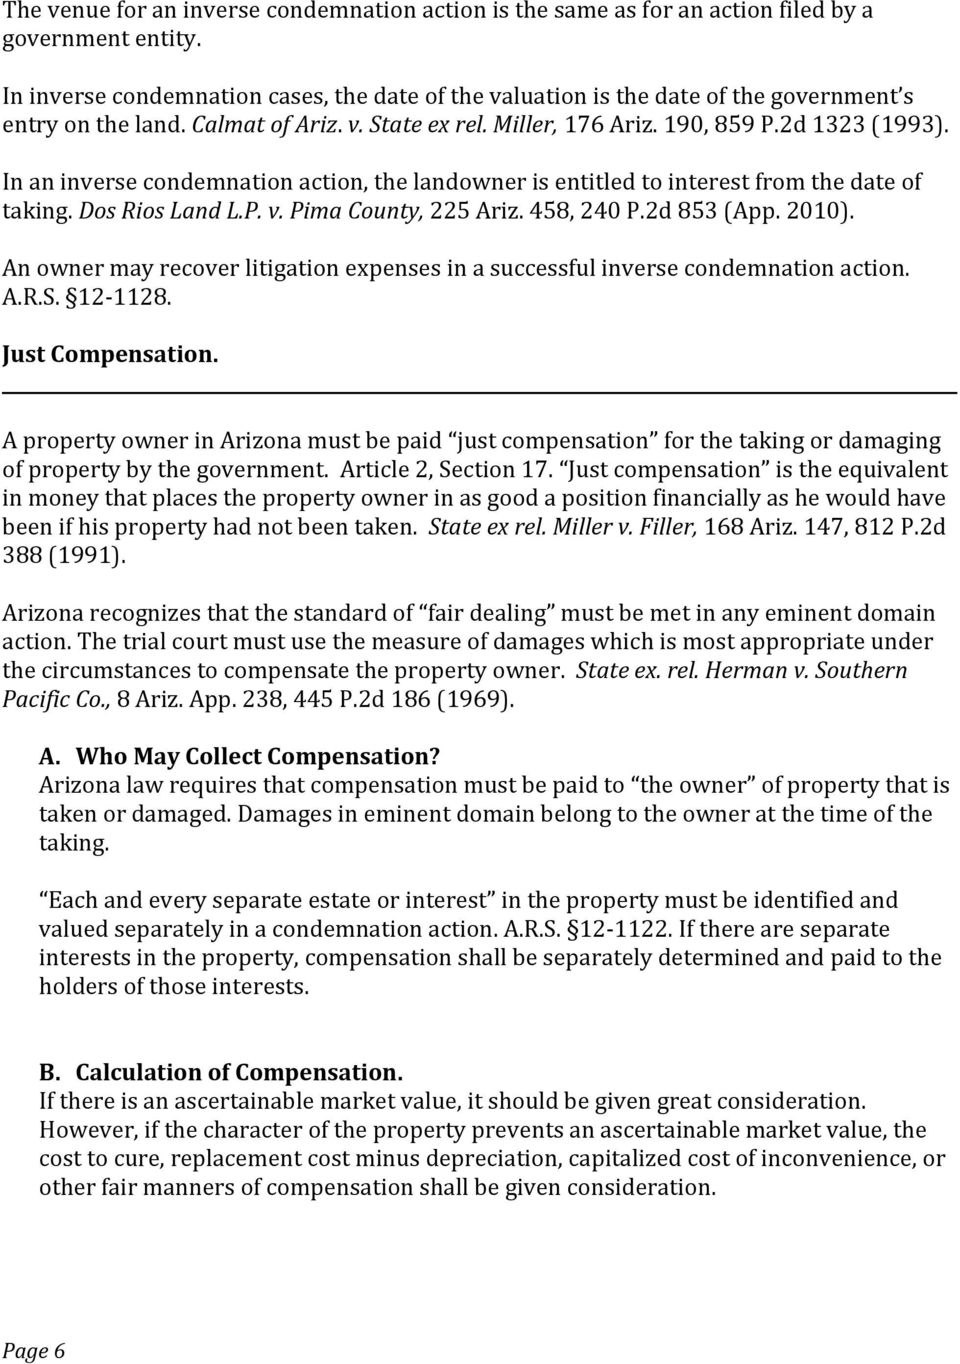 In an inverse condemnation action, the landowner is entitled to interest from the date of taking. Dos Rios Land L.P. v. Pima County, 225 Ariz. 458, 240 P.2d 853 (App. 2010).